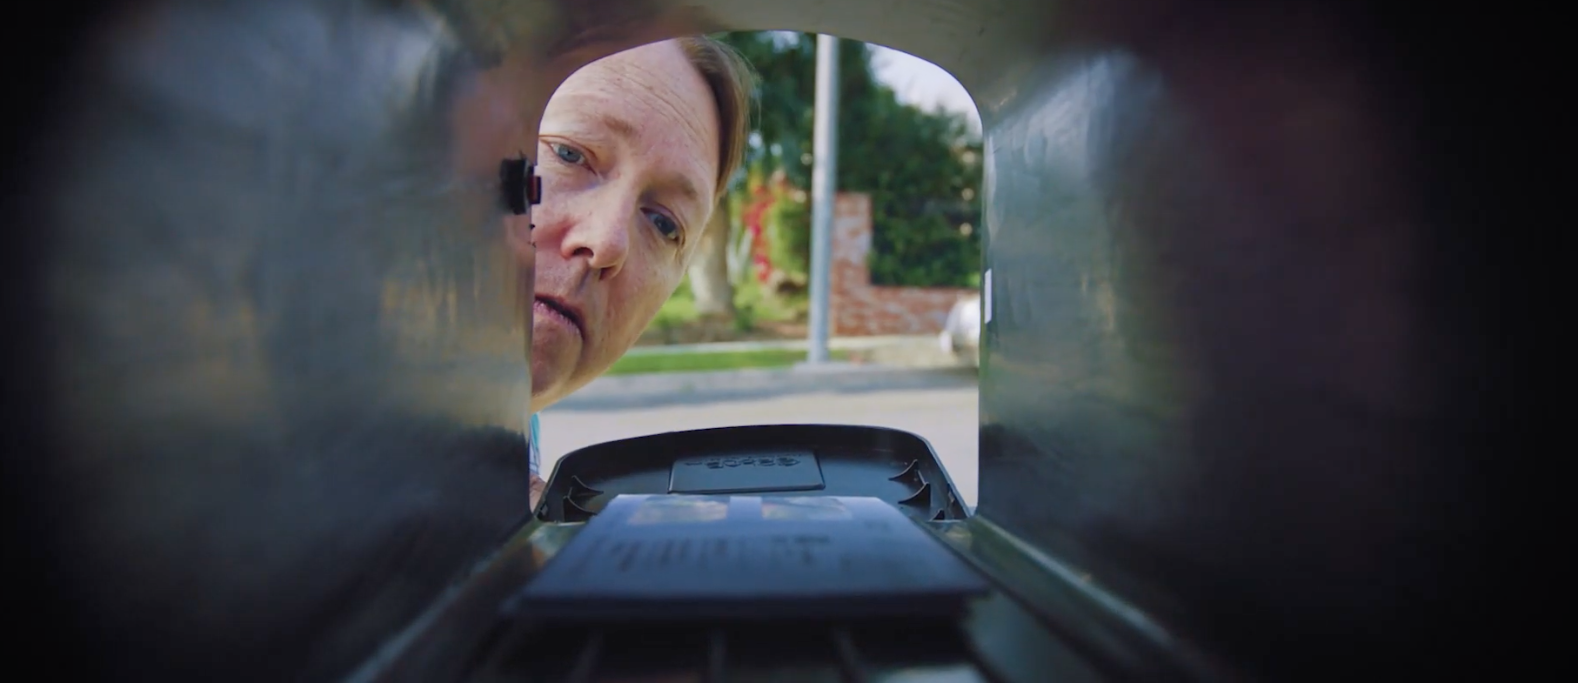 A Chipper Mailman Faces Off With A Customer Who's Literally From Hell In This Funny Short